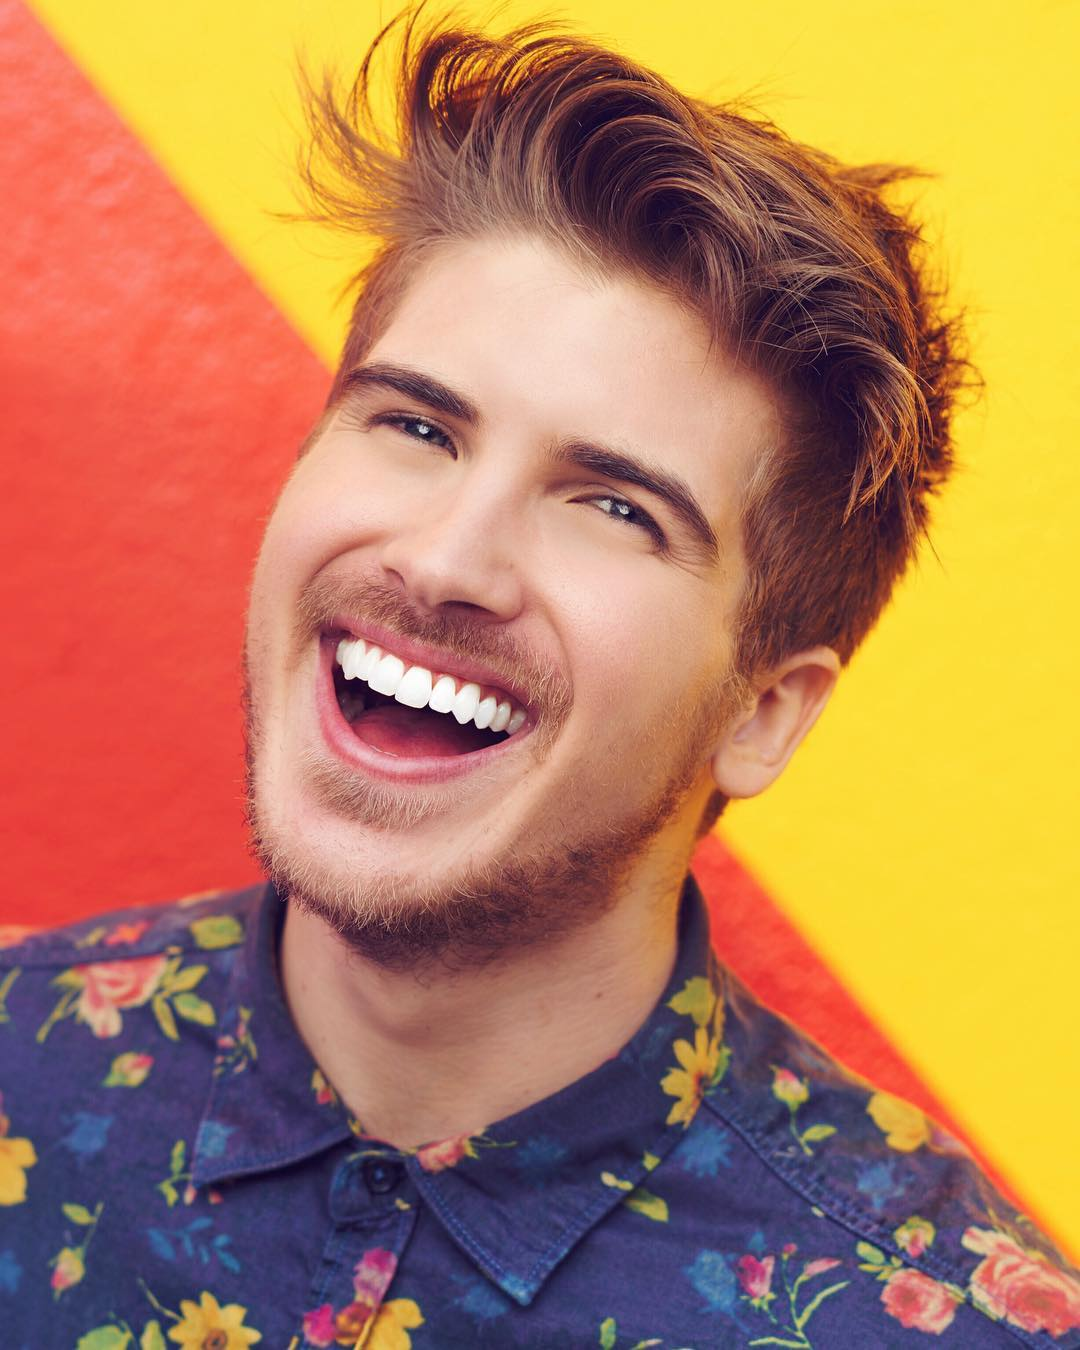 Joey Graceffa Instagram username